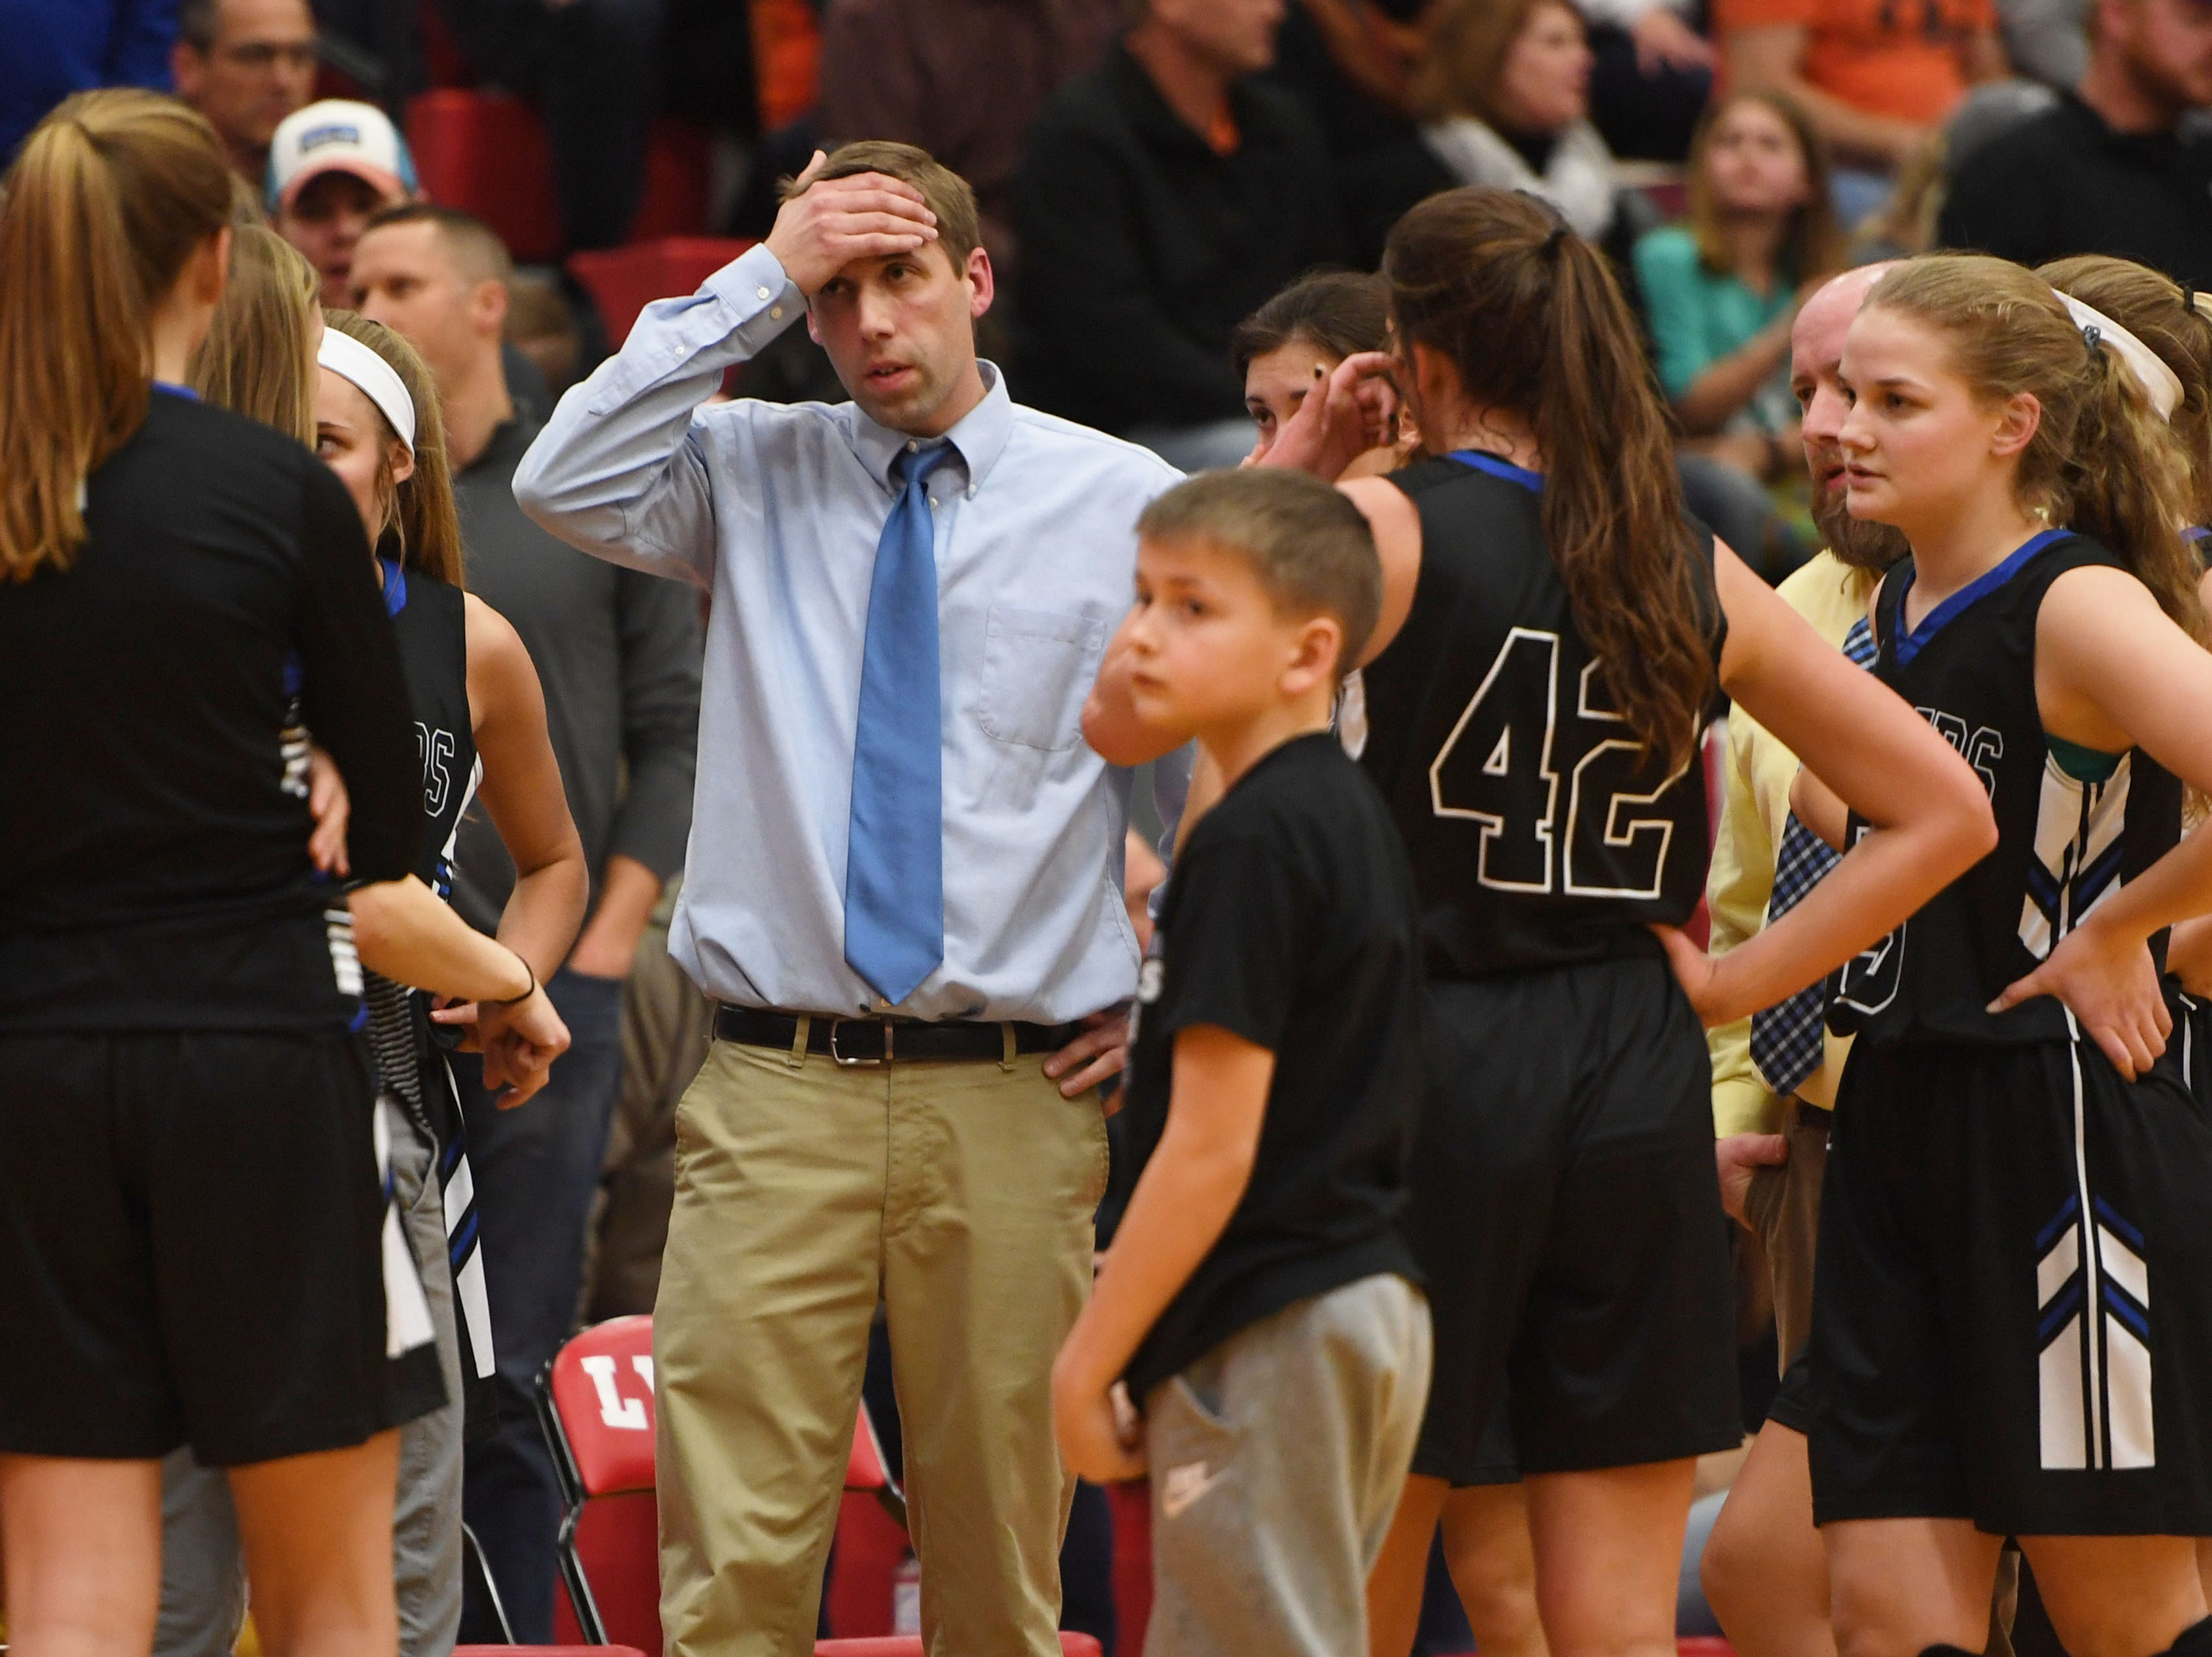 Sioux Falls Christian sidelines during the game against Lennox Thursday, March 7, at Brandon Valley High School in Brandon Valley.